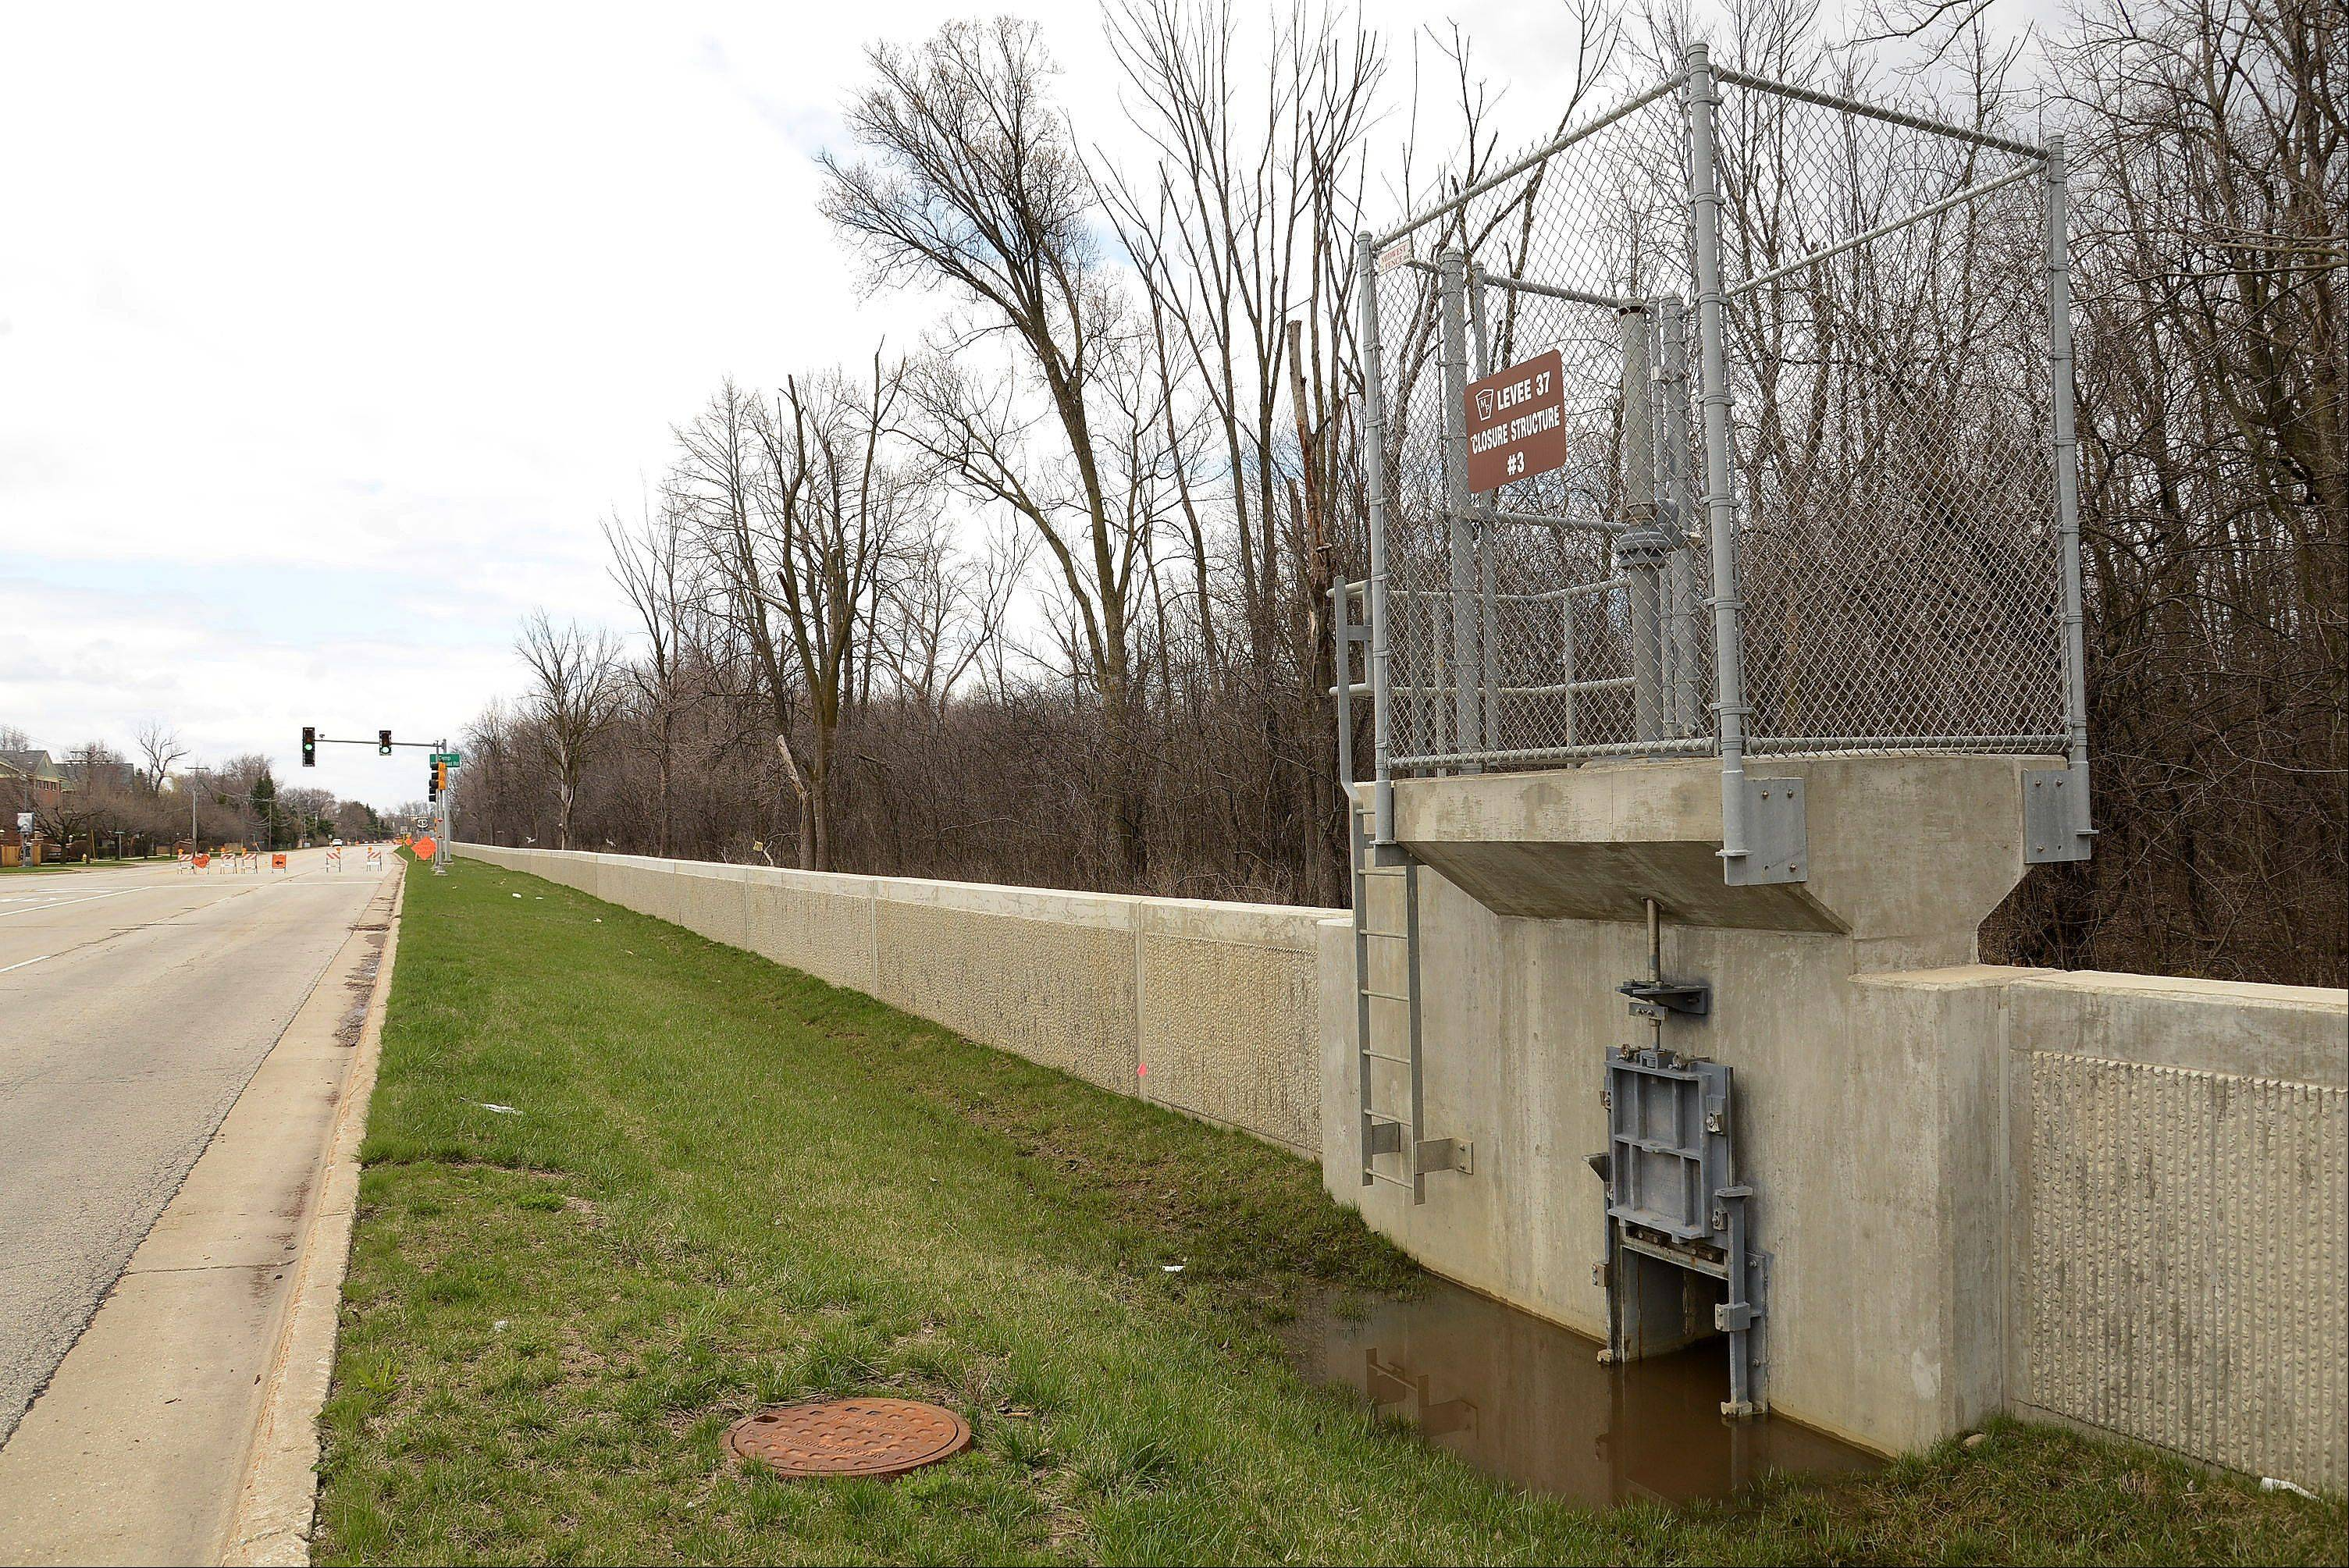 Northwest suburban communities along the Des Plaines River met Monday to discuss operations of Levee 37 along River Road in Mount Prospect as well as the need to accelerate the pace of construction of stormwater basins in Wheeling�s Heritage Park.